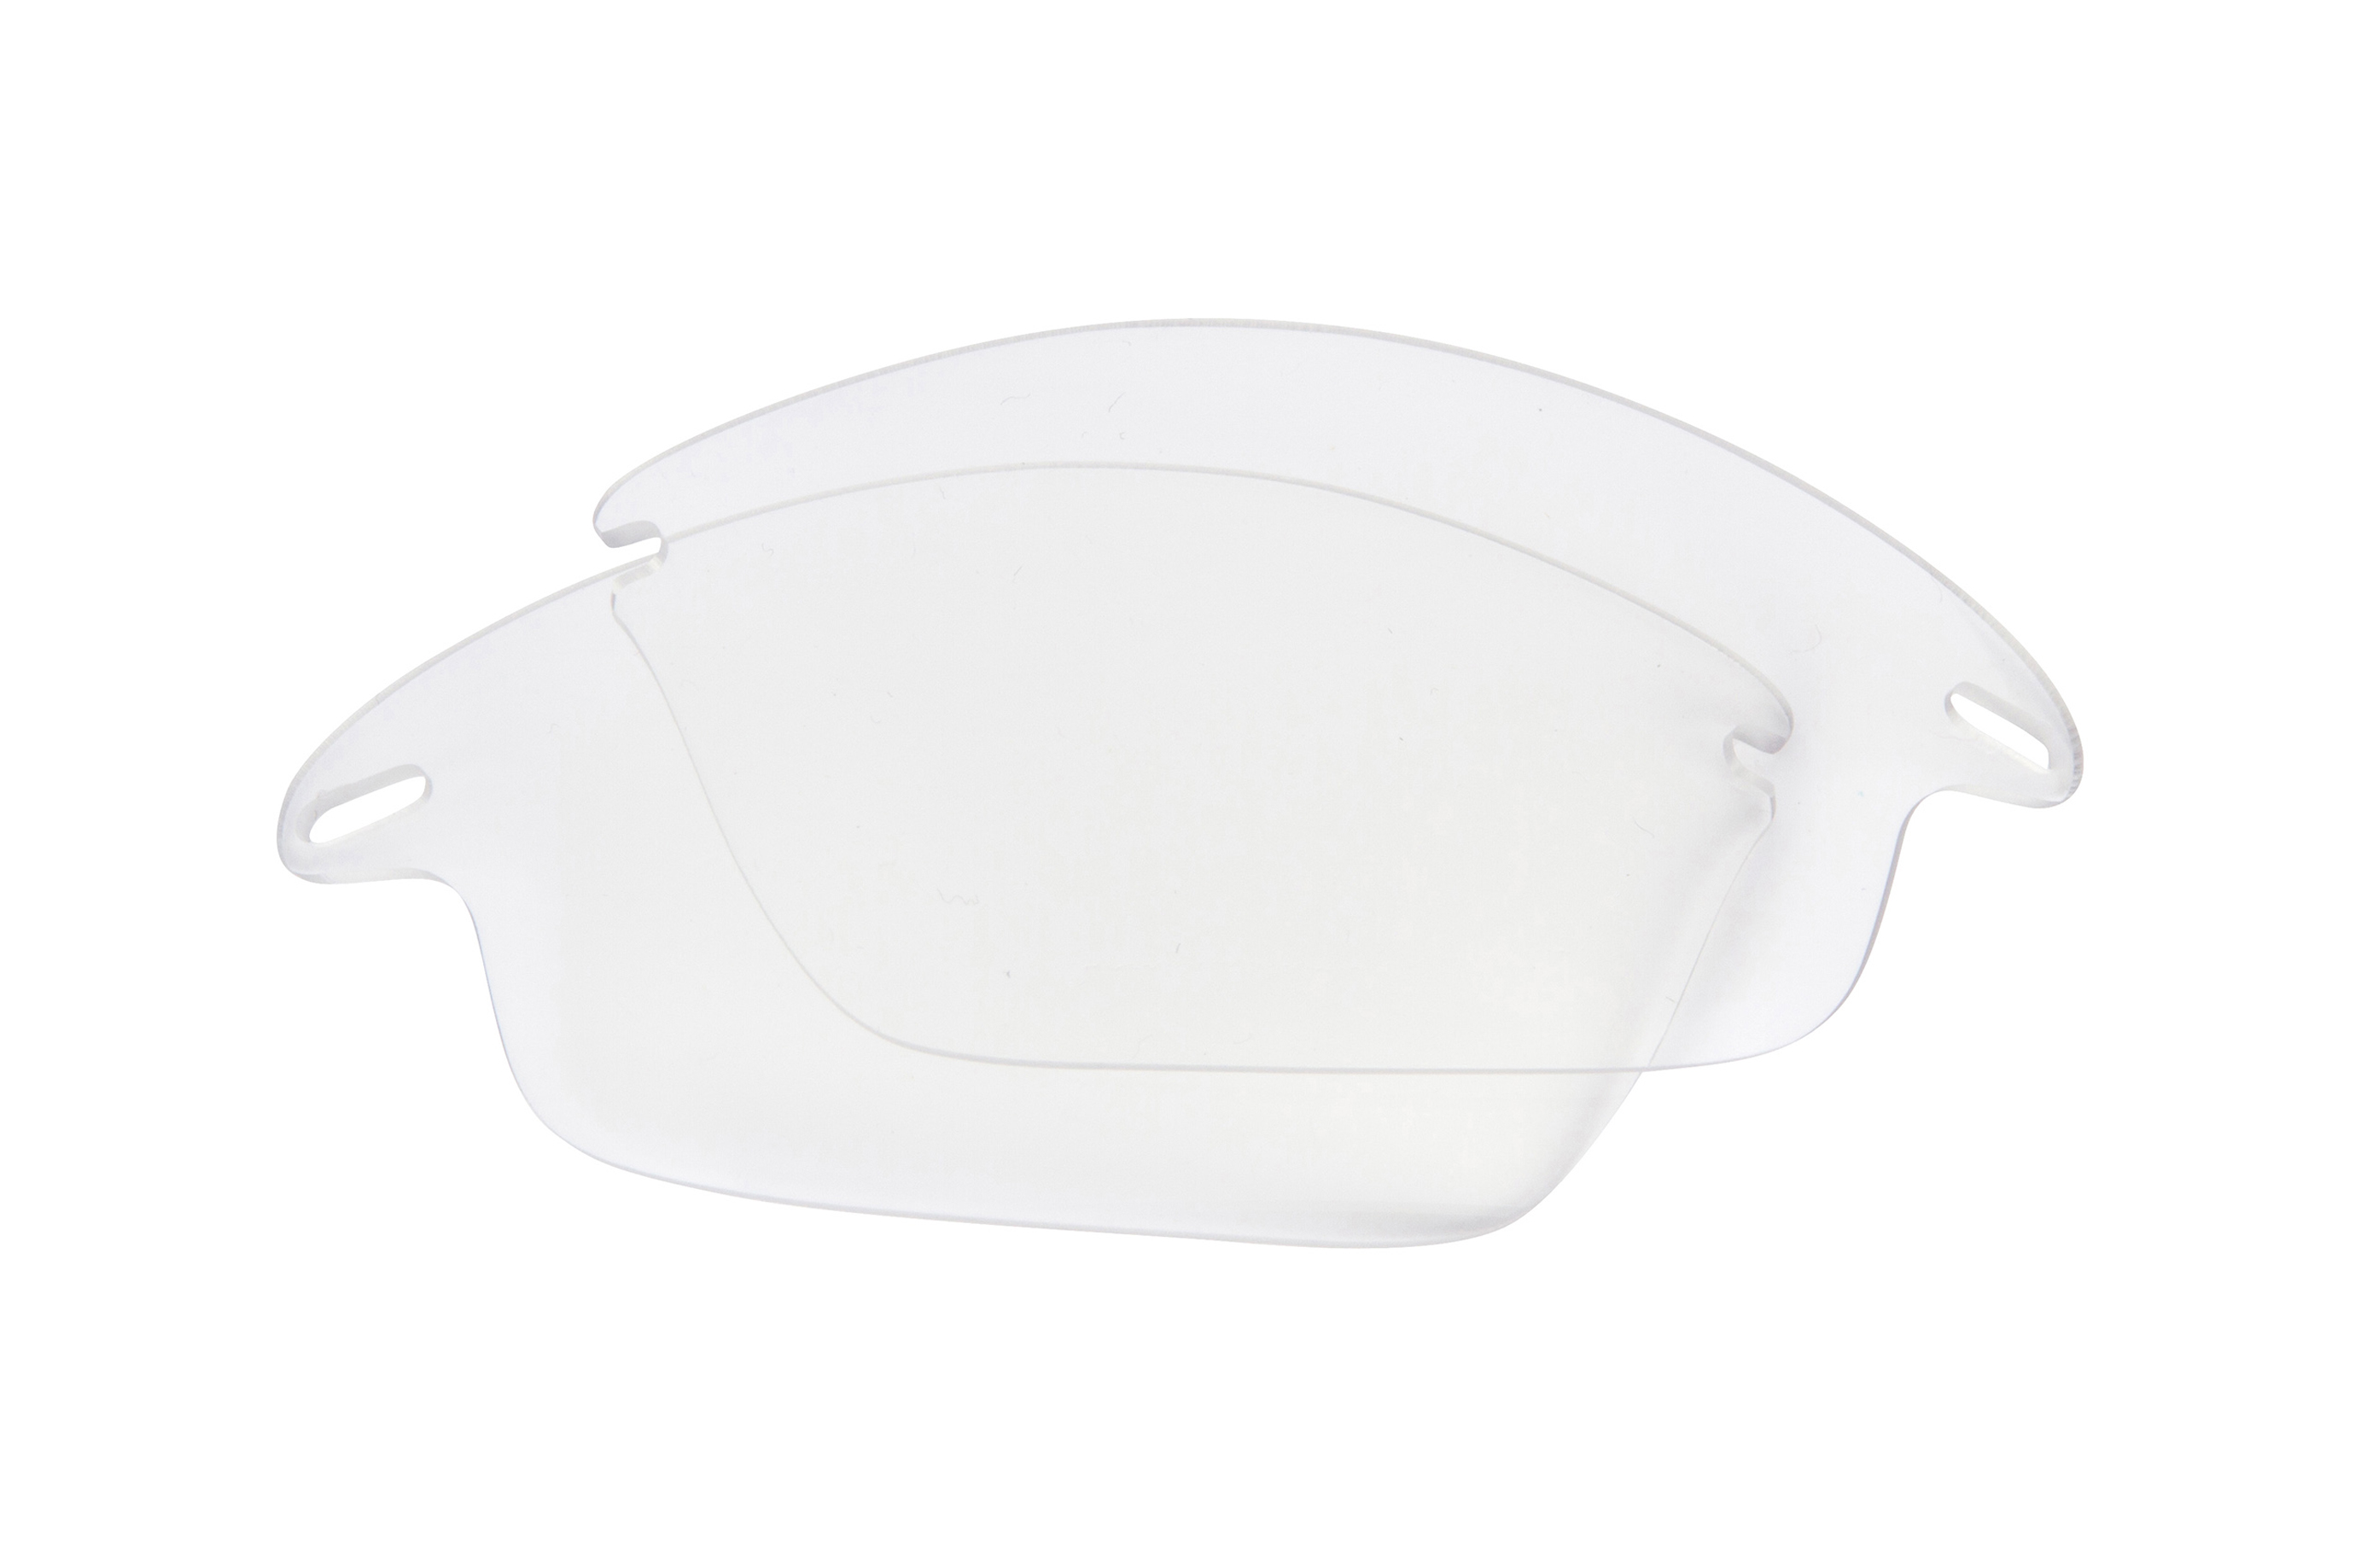 0b6fe09634a Seek Optics - Fast Jacket Replacement Lenses by SEEK OPTICS to fit OAKLEY  Sunglasses - Walmart.com